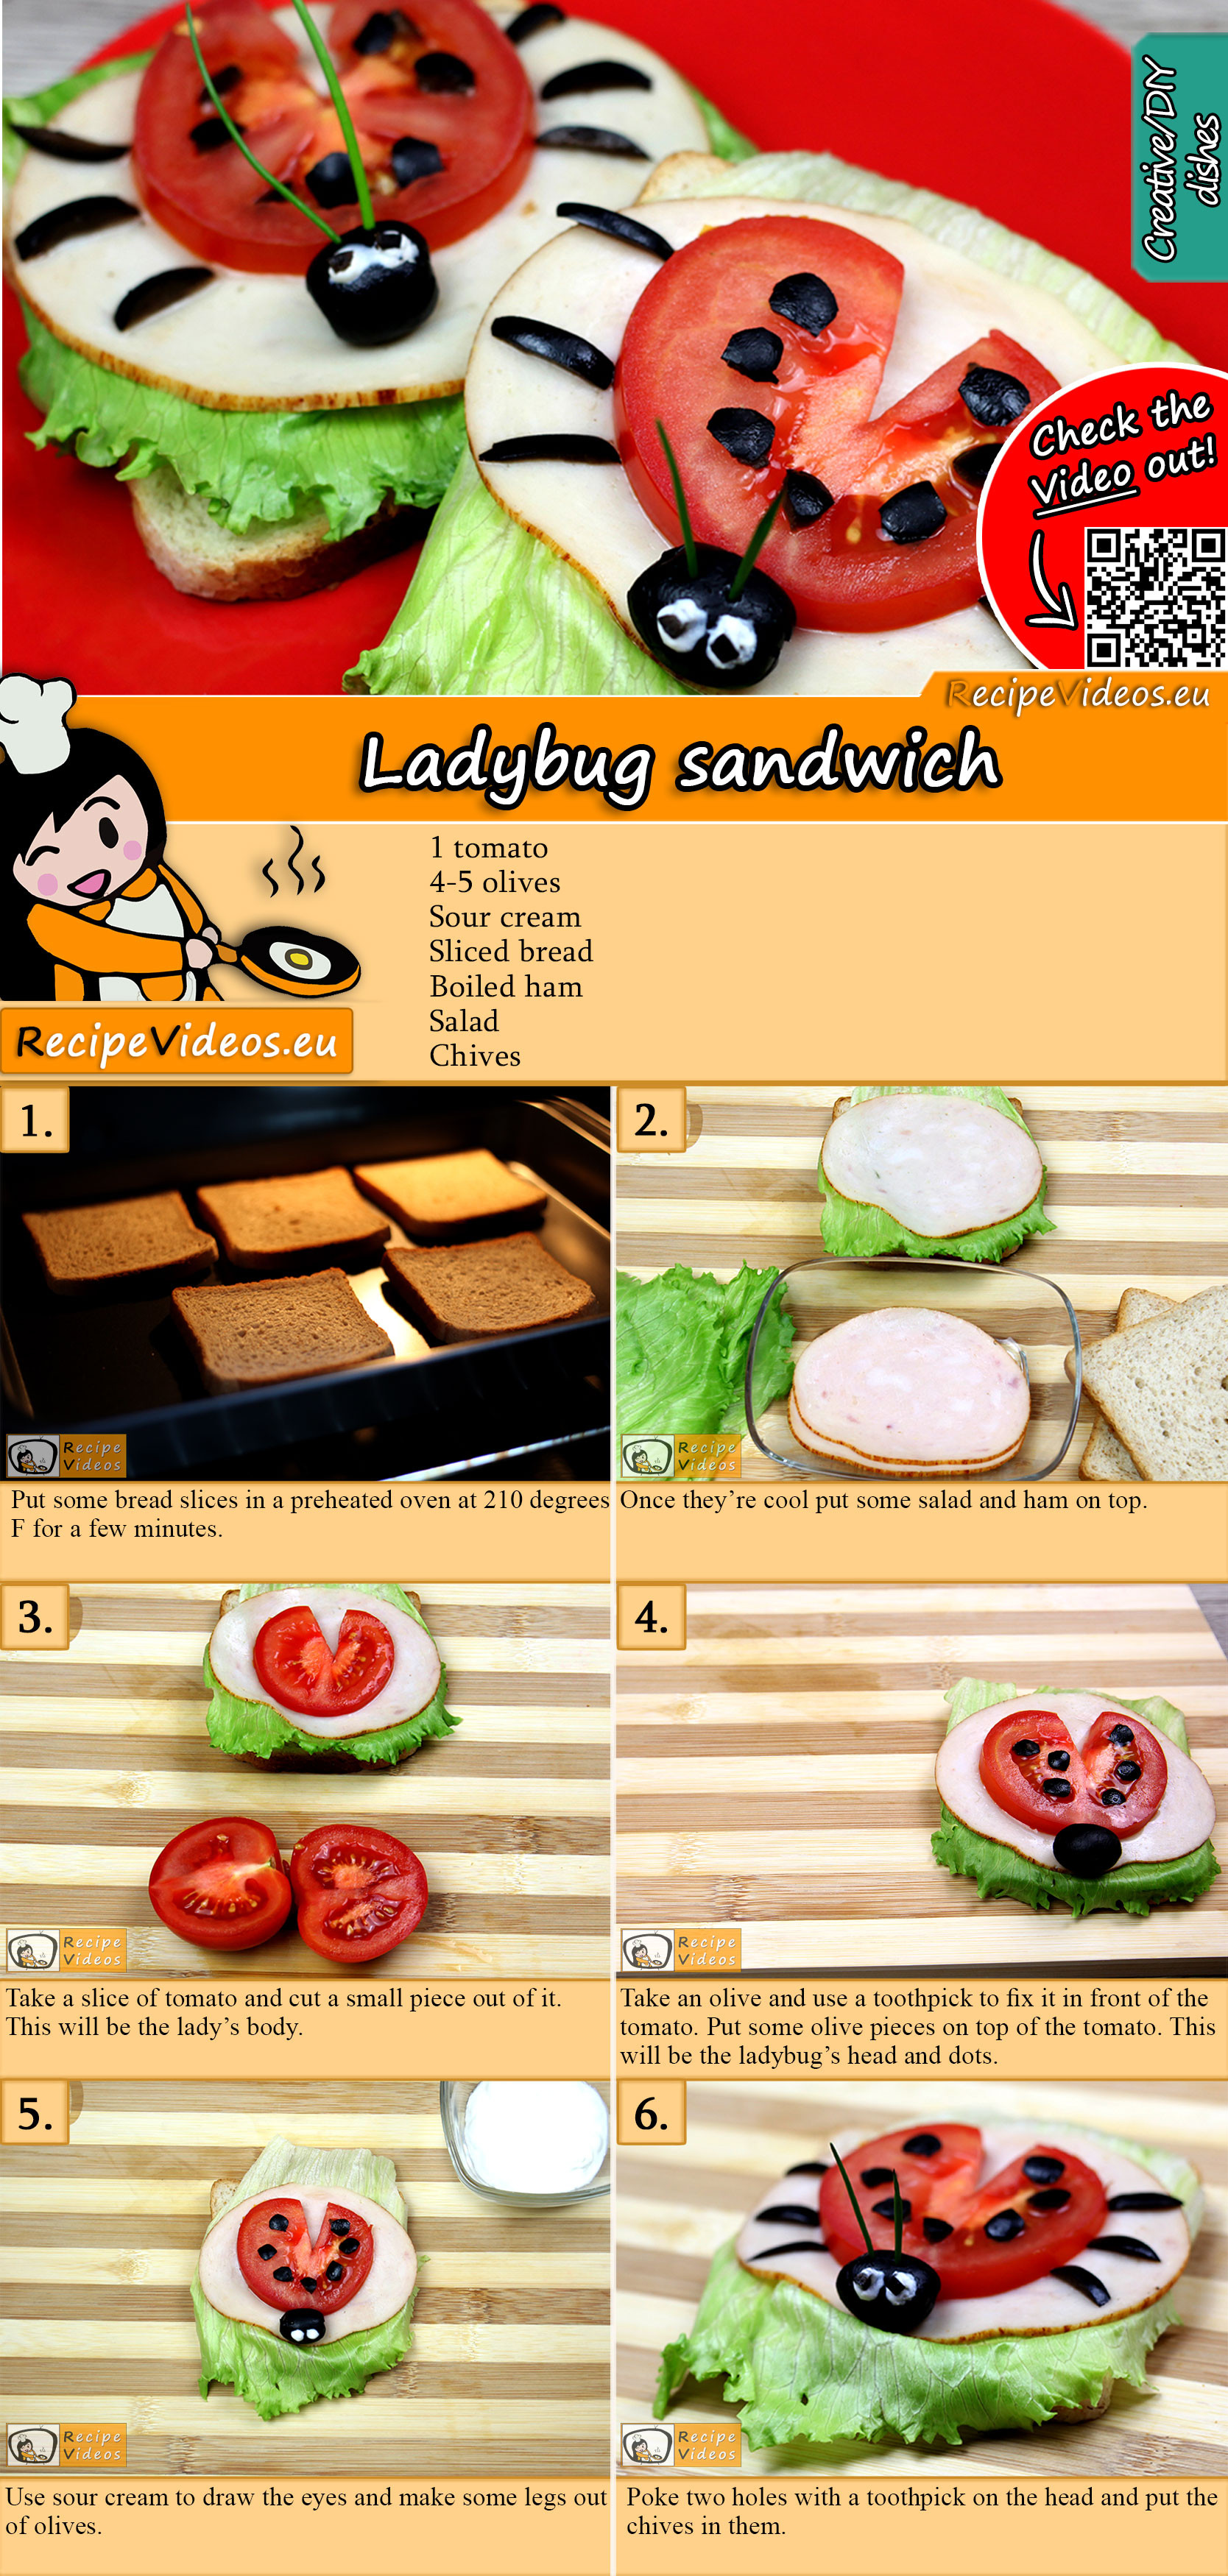 Ladybug sandwich recipe with video